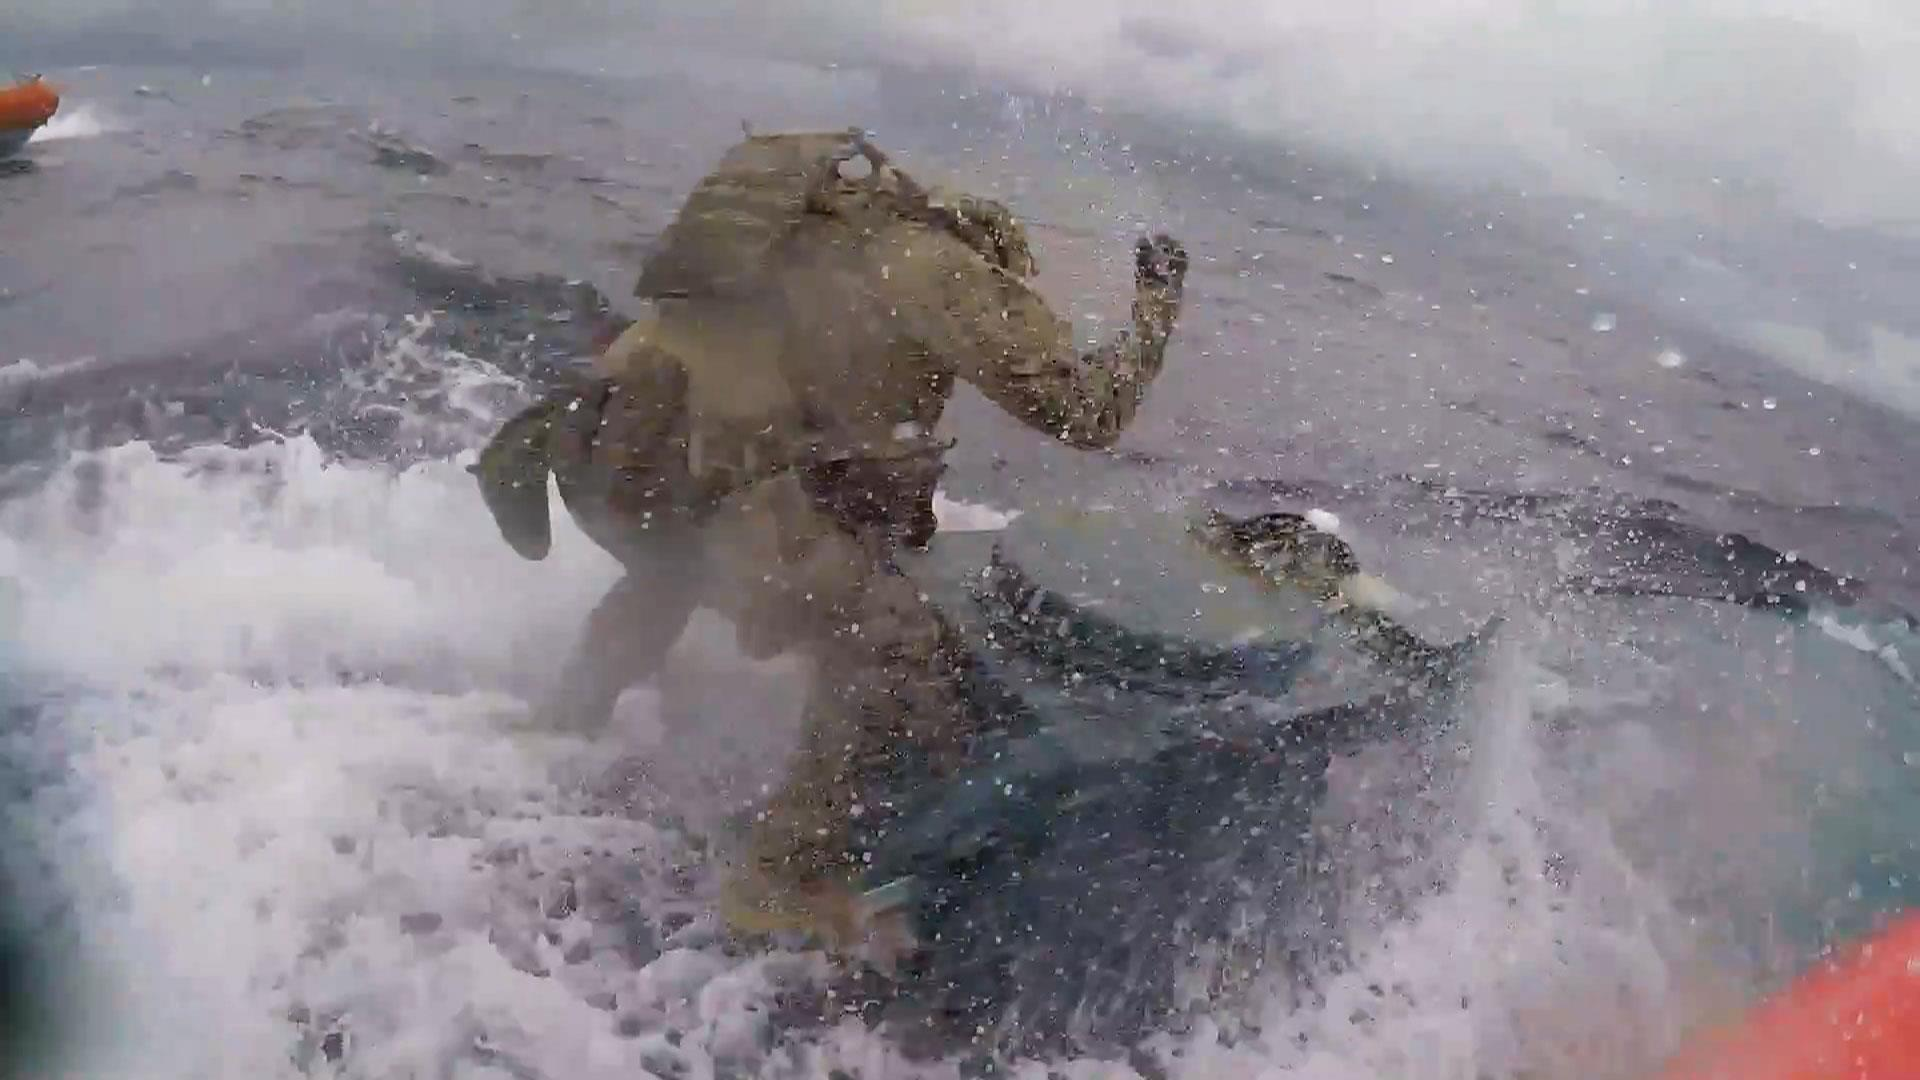 Dramatic video shows Coast Guard leaping onto submarine carrying 17,000 pounds of cocaine